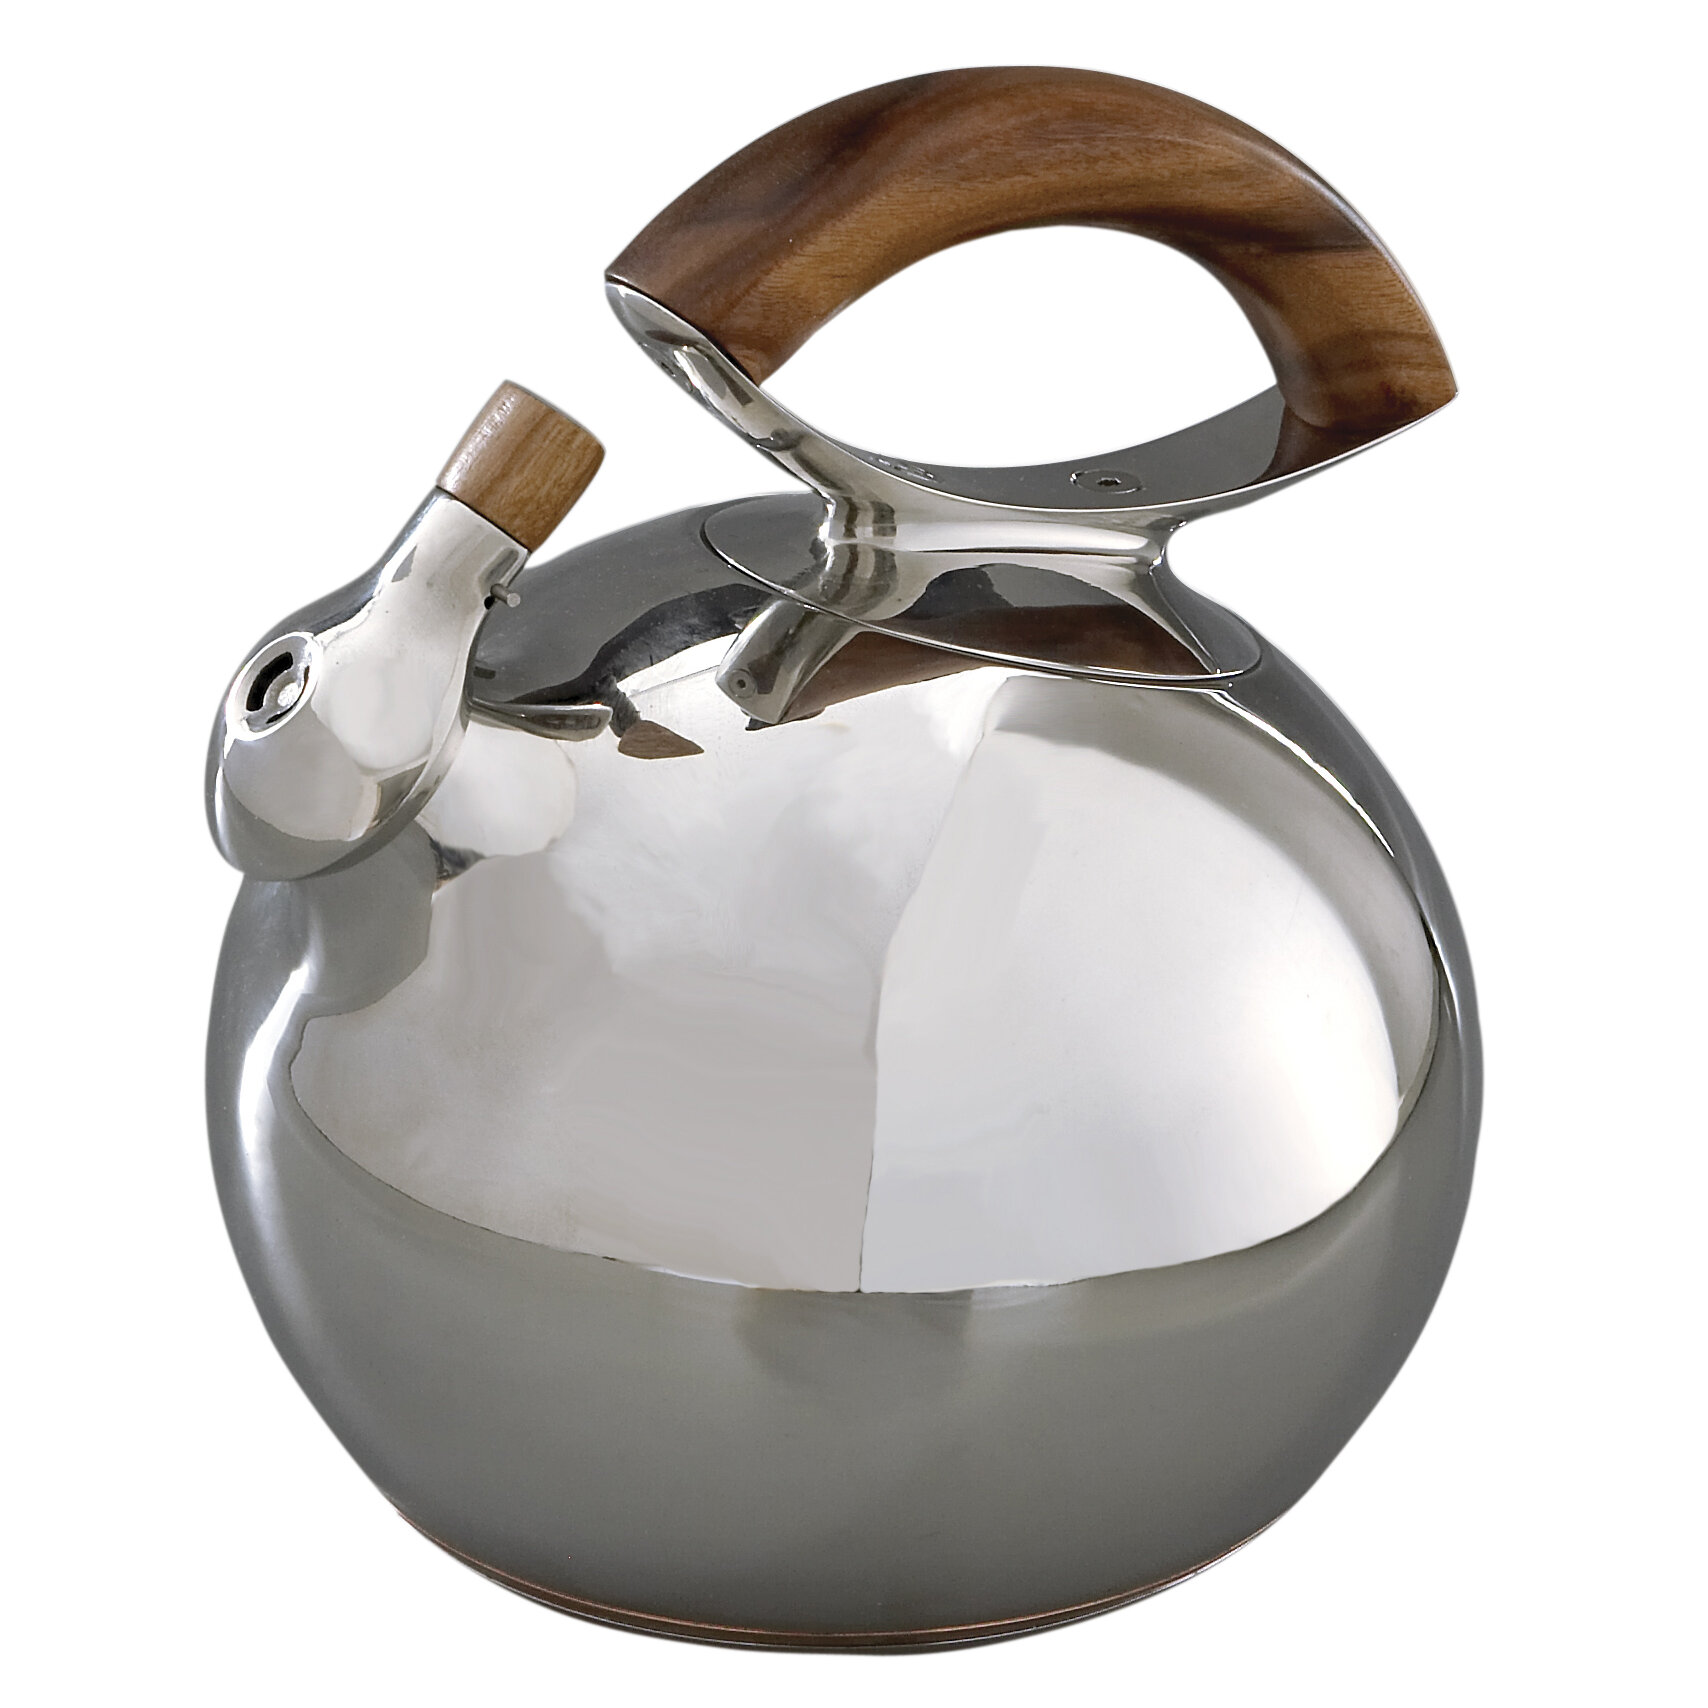 Nambe 1.47-qt. Bulbo Tea Kettle & Reviews | Wayfair